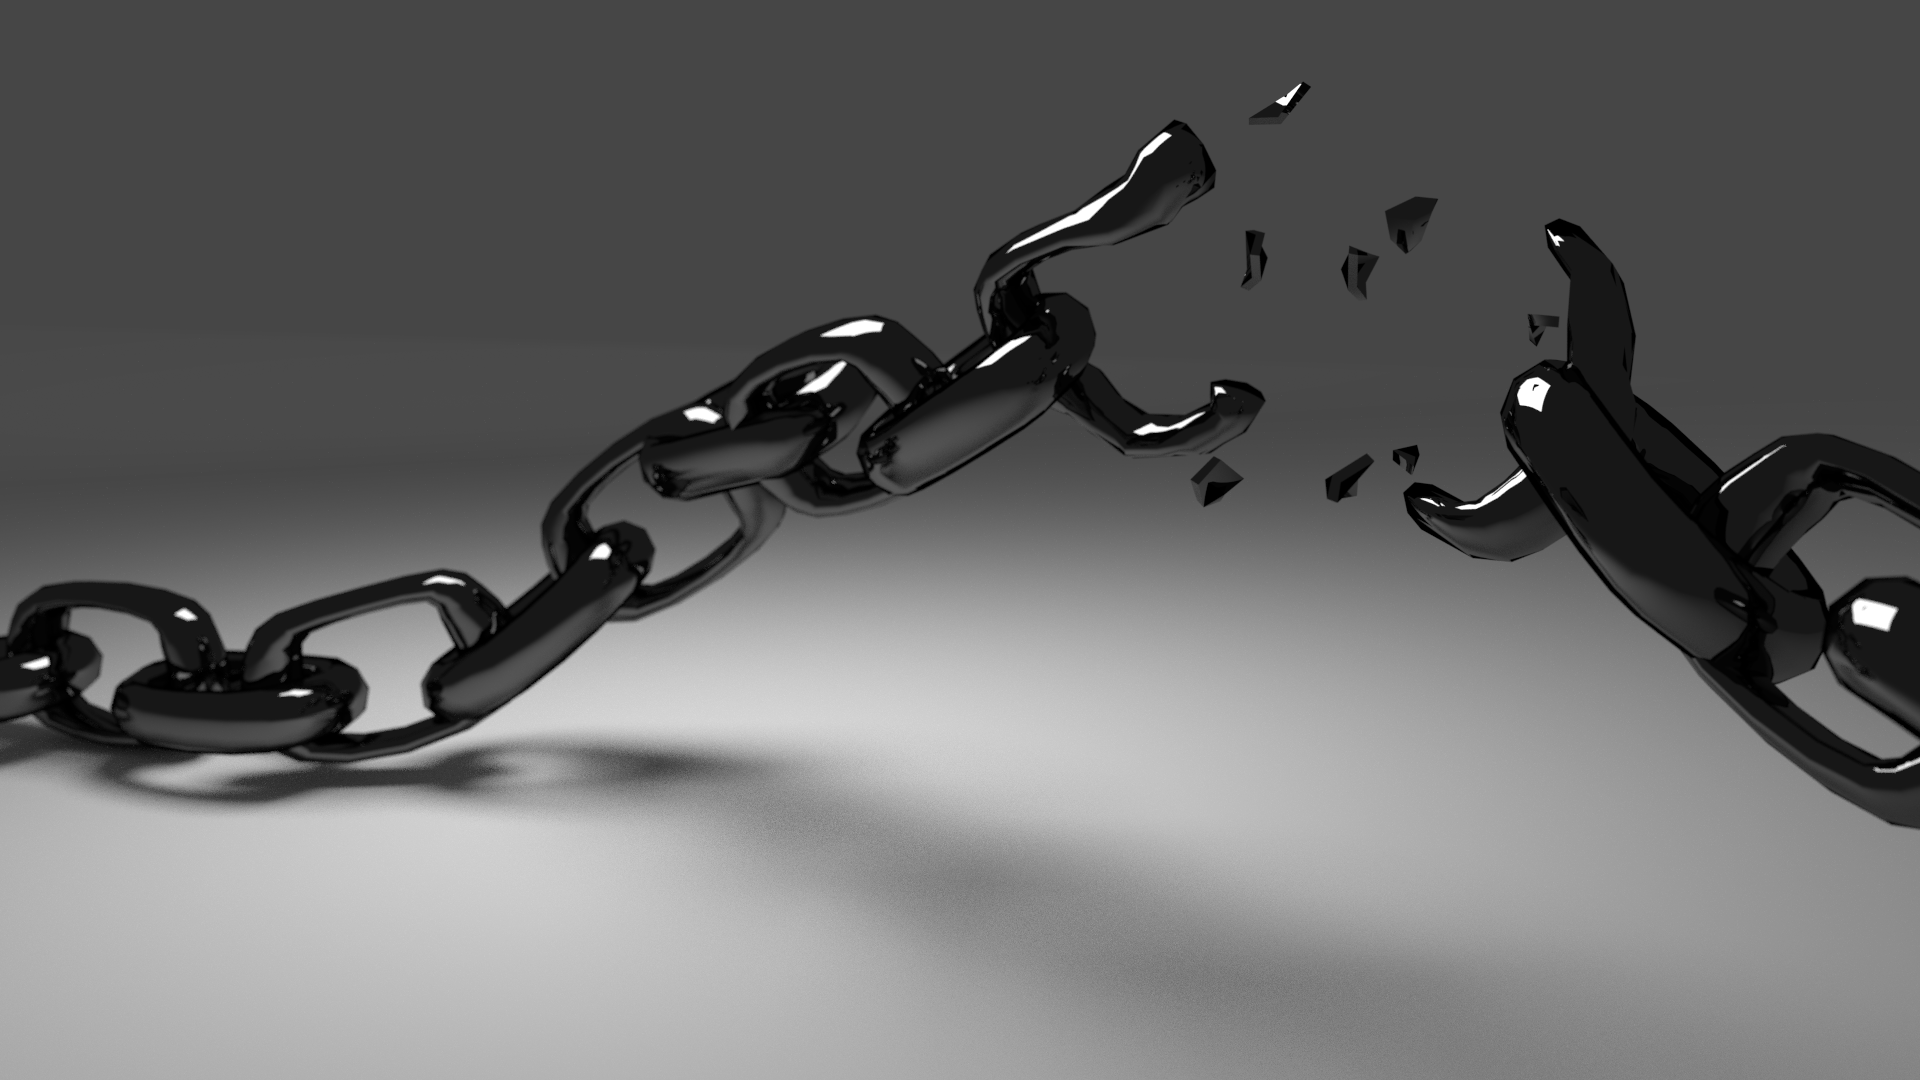 Broken Chains Png 1920 1080 My Chains Are Gone Celebrate Recovery Broken Chain